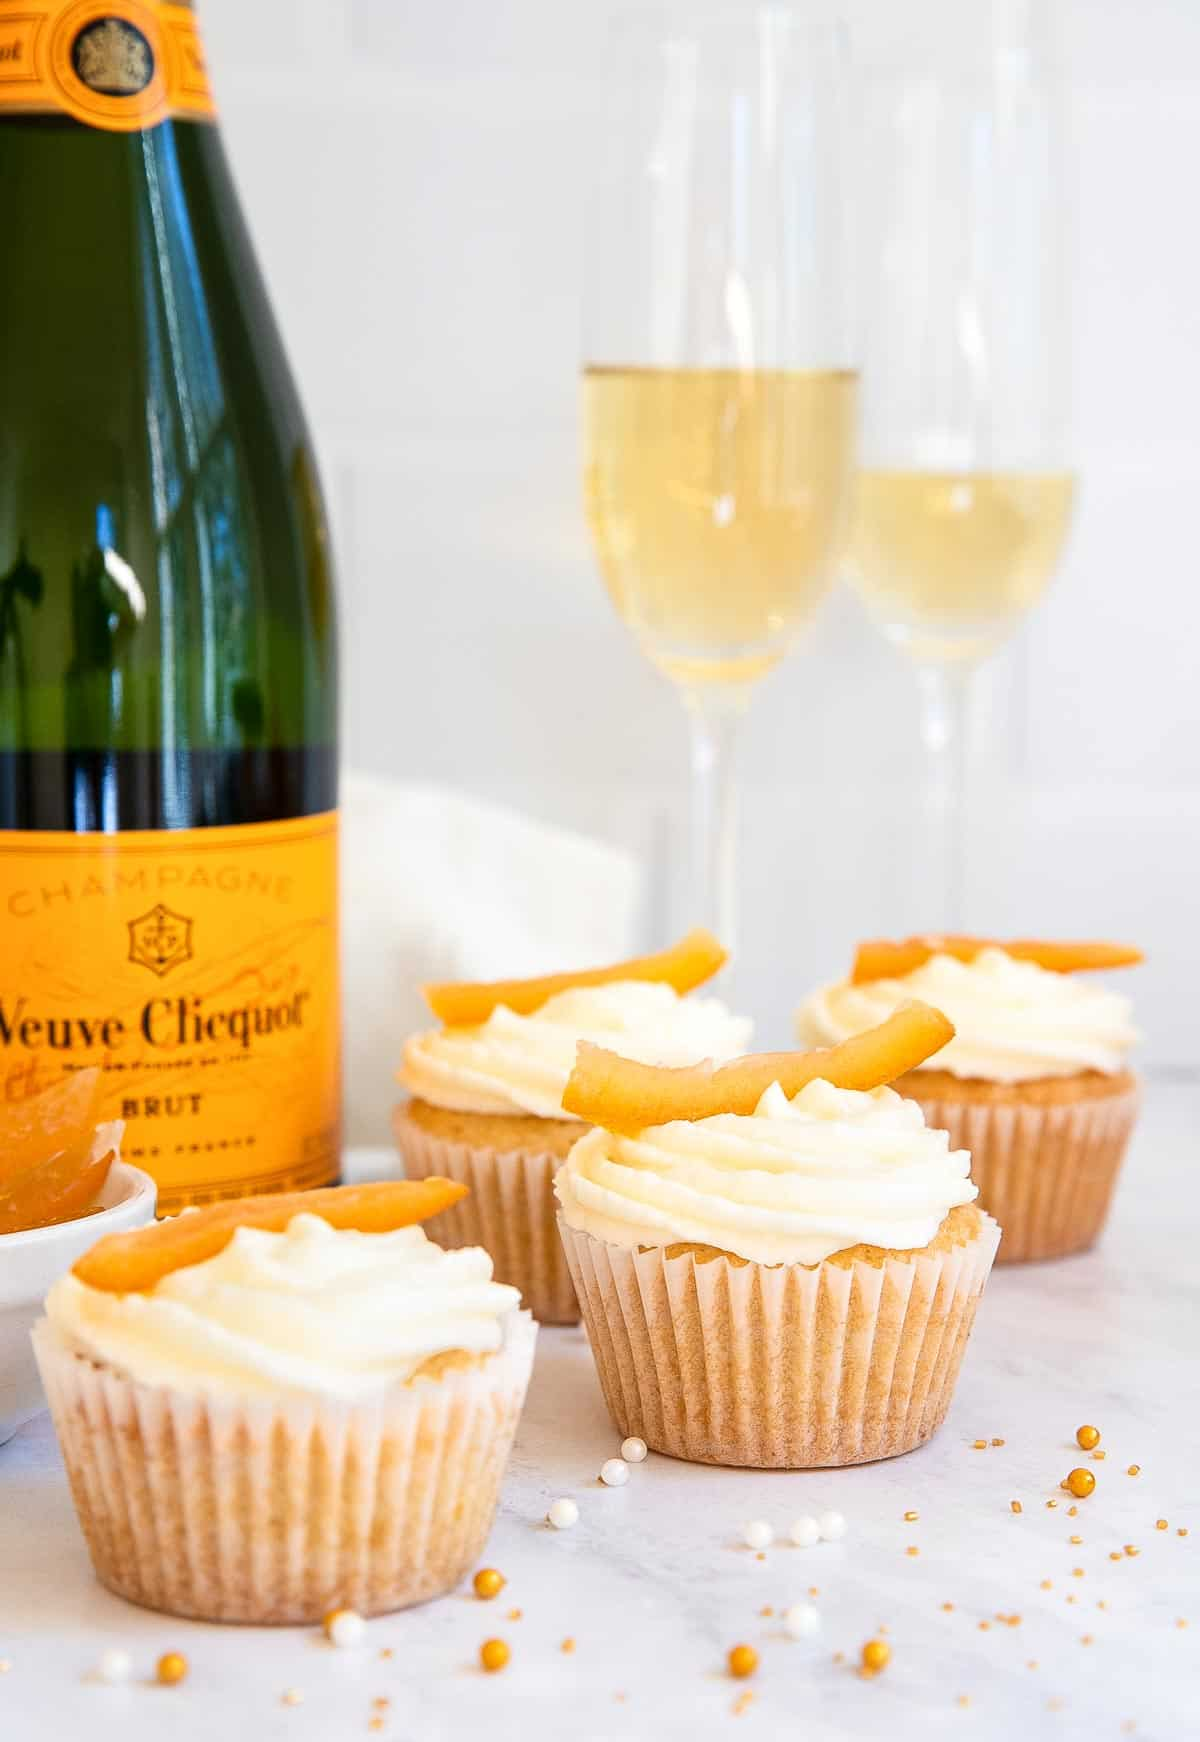 Champagne cupcakes with orange zest on top and bottle of champagne.